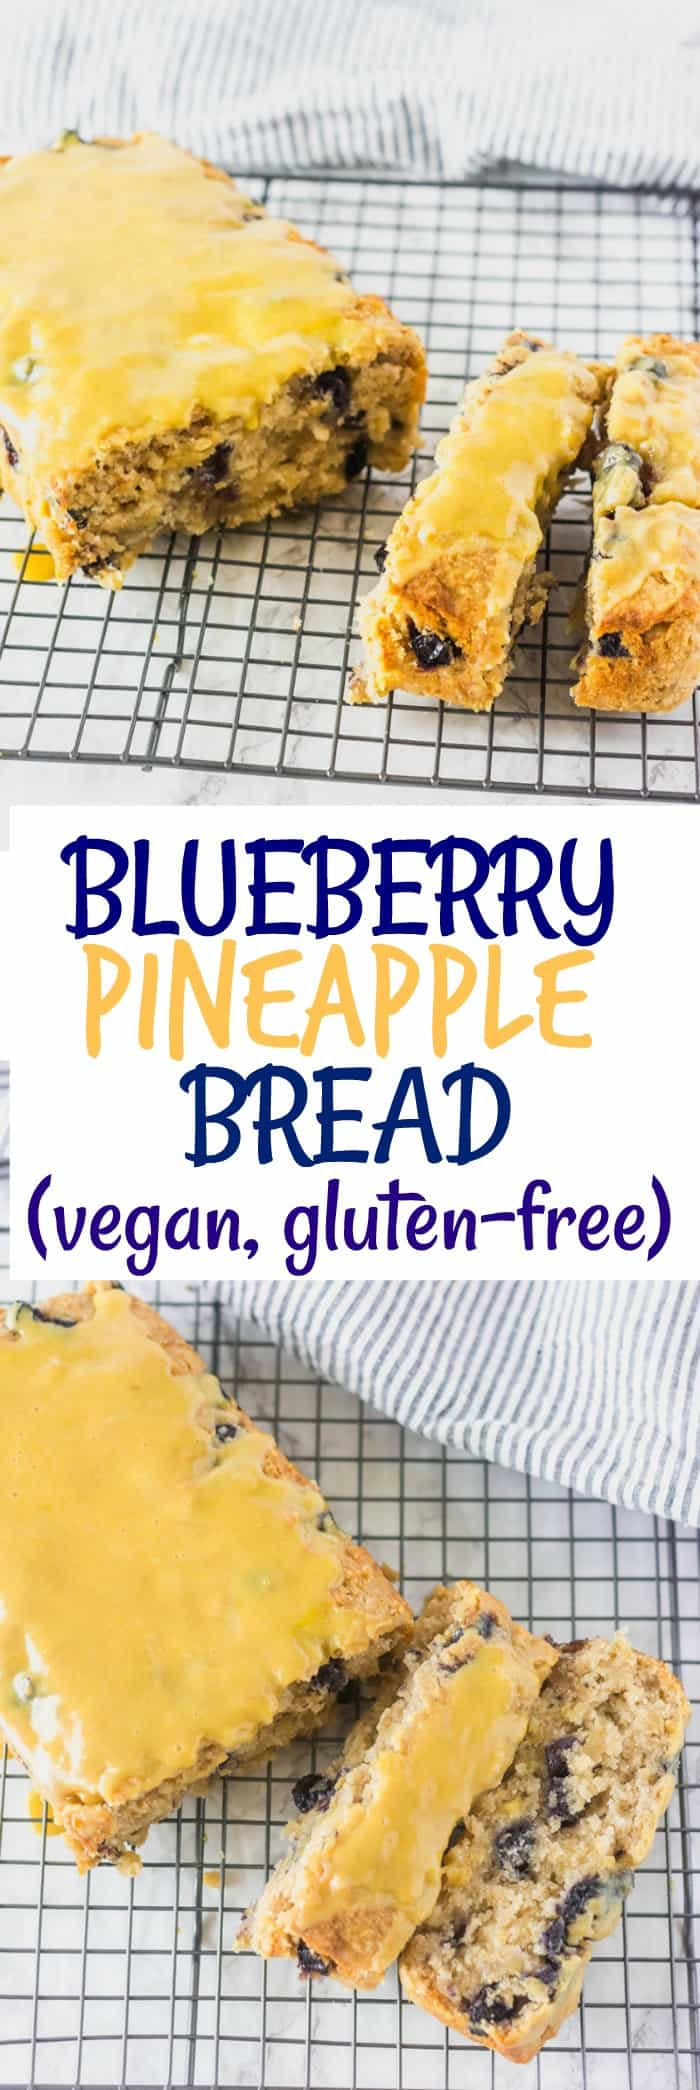 Blueberry Pineapple Bread